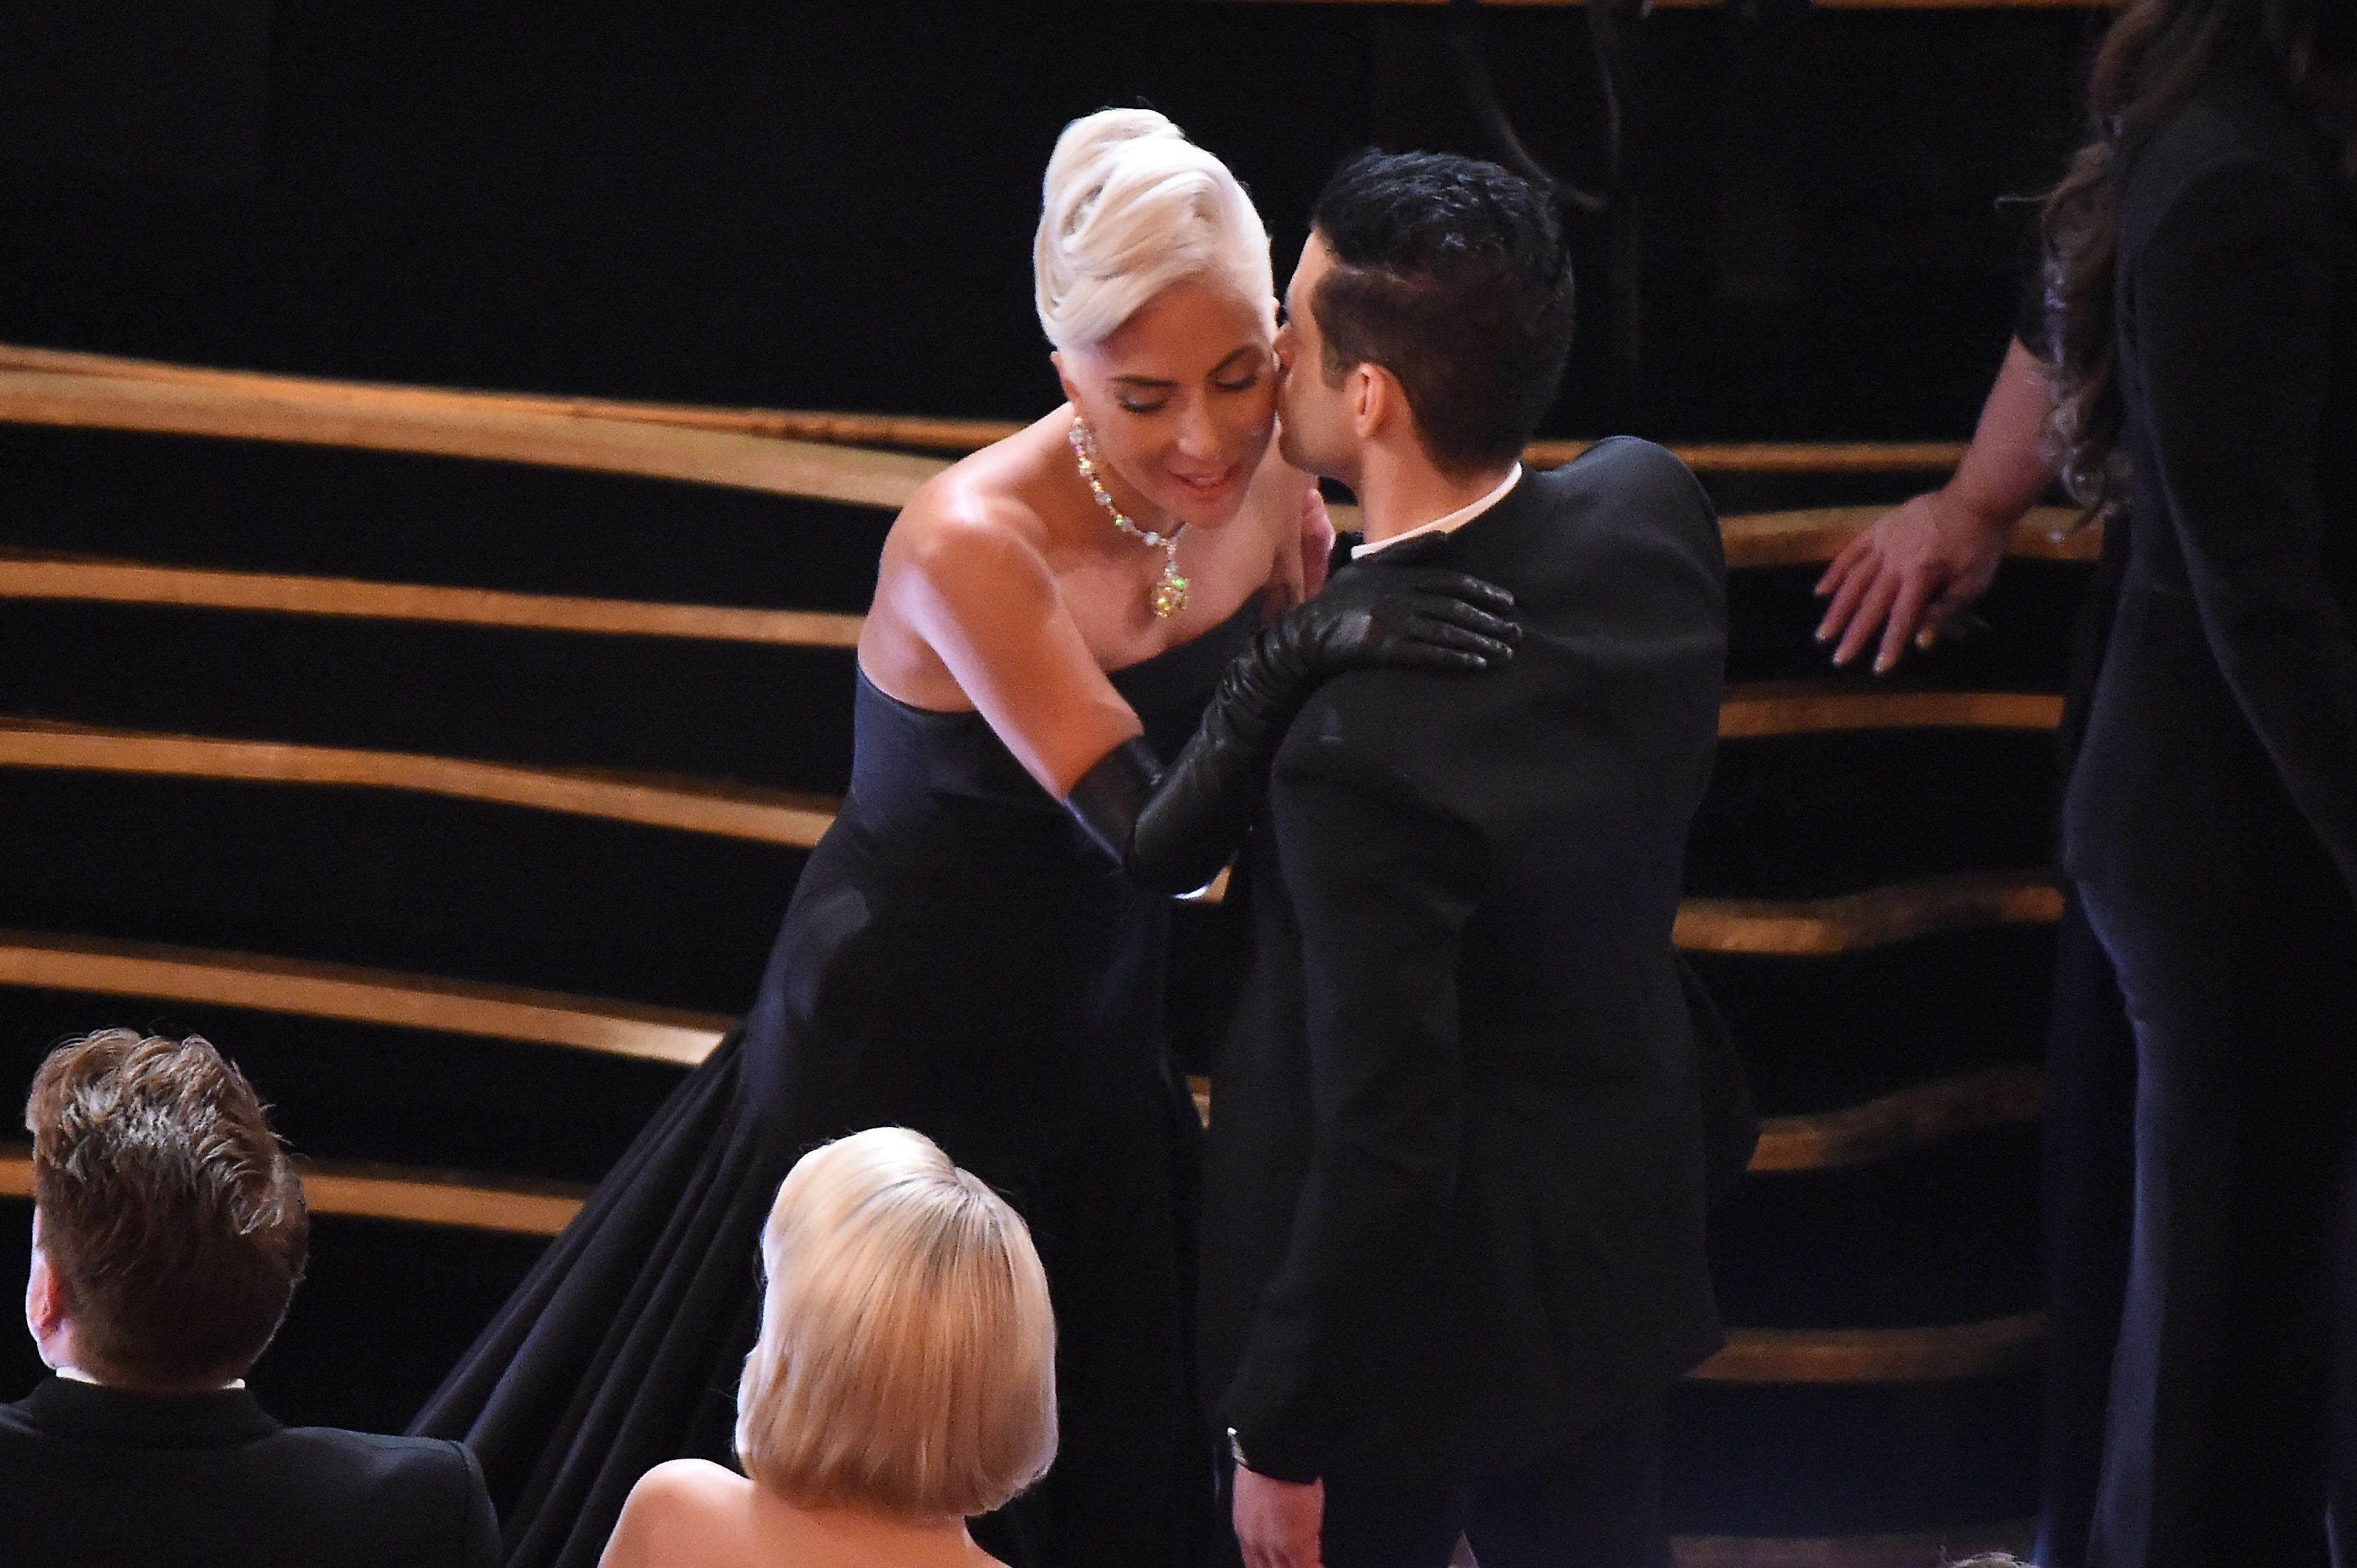 Singer and actress Lady Gaga and US actor Rami Malek chat during the 91st Annual Academy Awards at the Dolby Theatre in Hollywood, California on February 24, 2019. (Photo by VALERIE MACON / AFP)        (Photo credit should read VALERIE MACON/AFP/Getty Images)